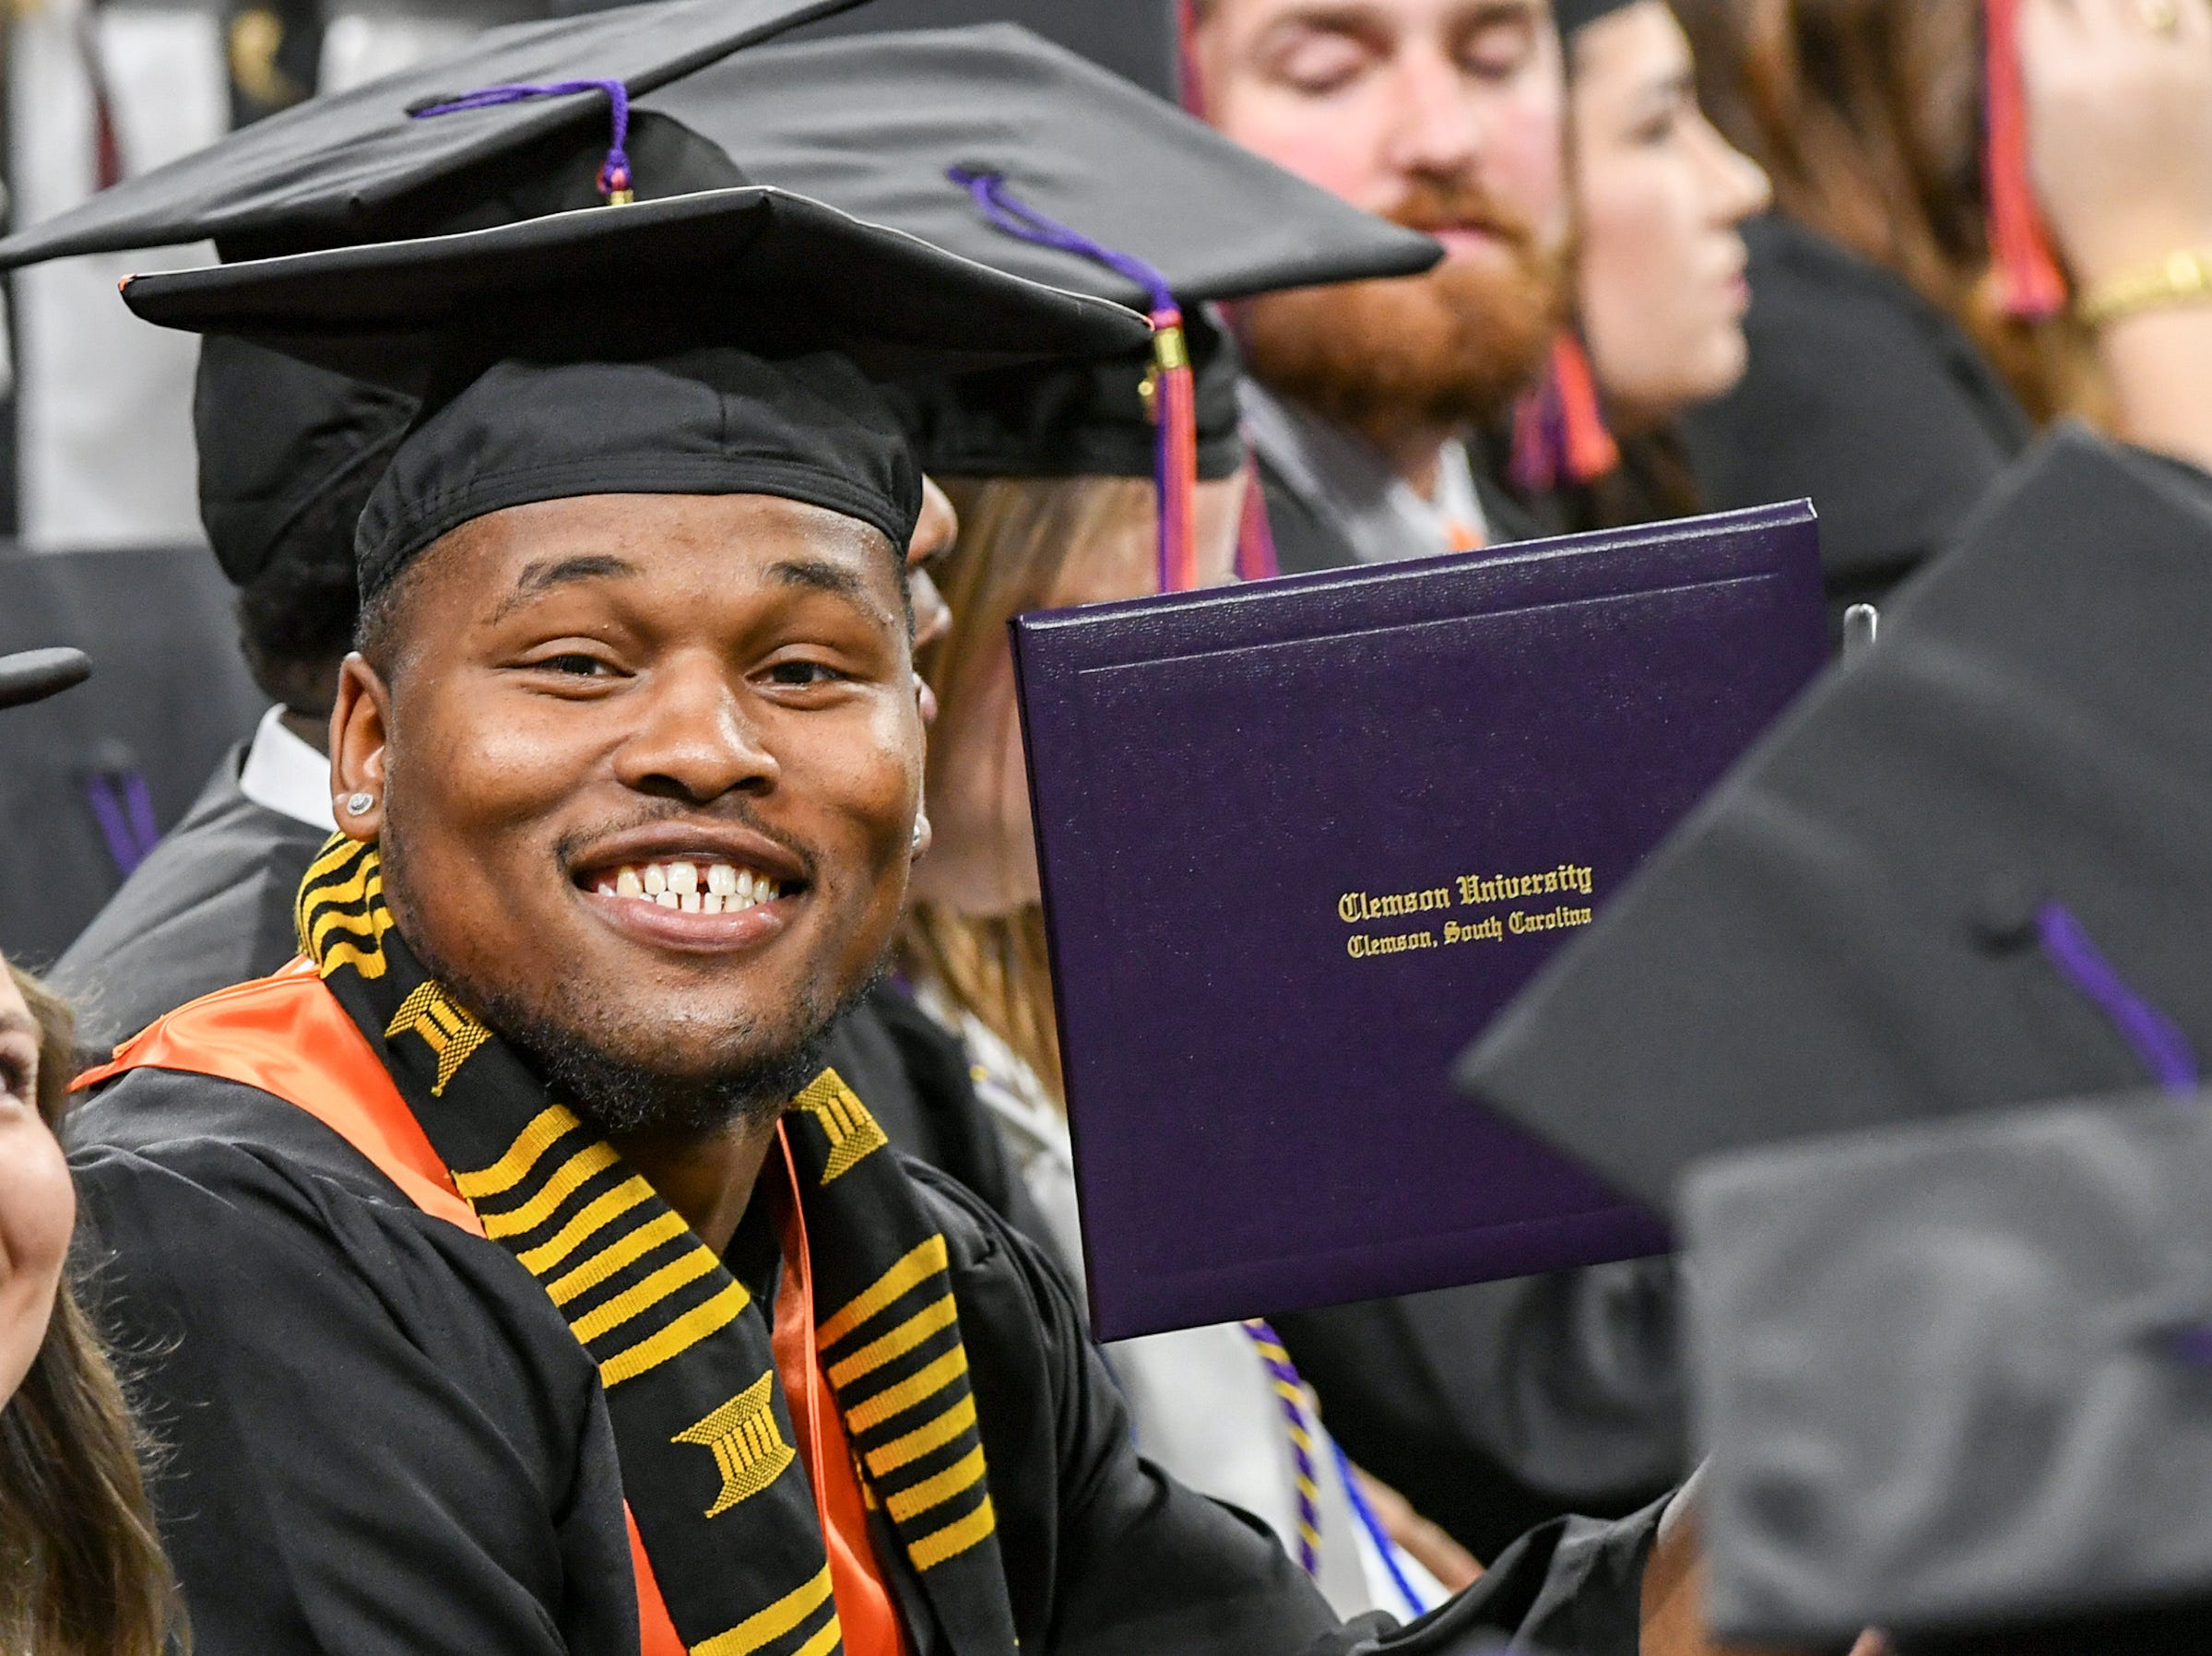 Shaq Smith gets his bachelor of science in parks, recreation, tourism, management smiles during Clemson University commencement ceremonies in Littlejohn Coliseum in Clemson Friday, May 10, 2019.